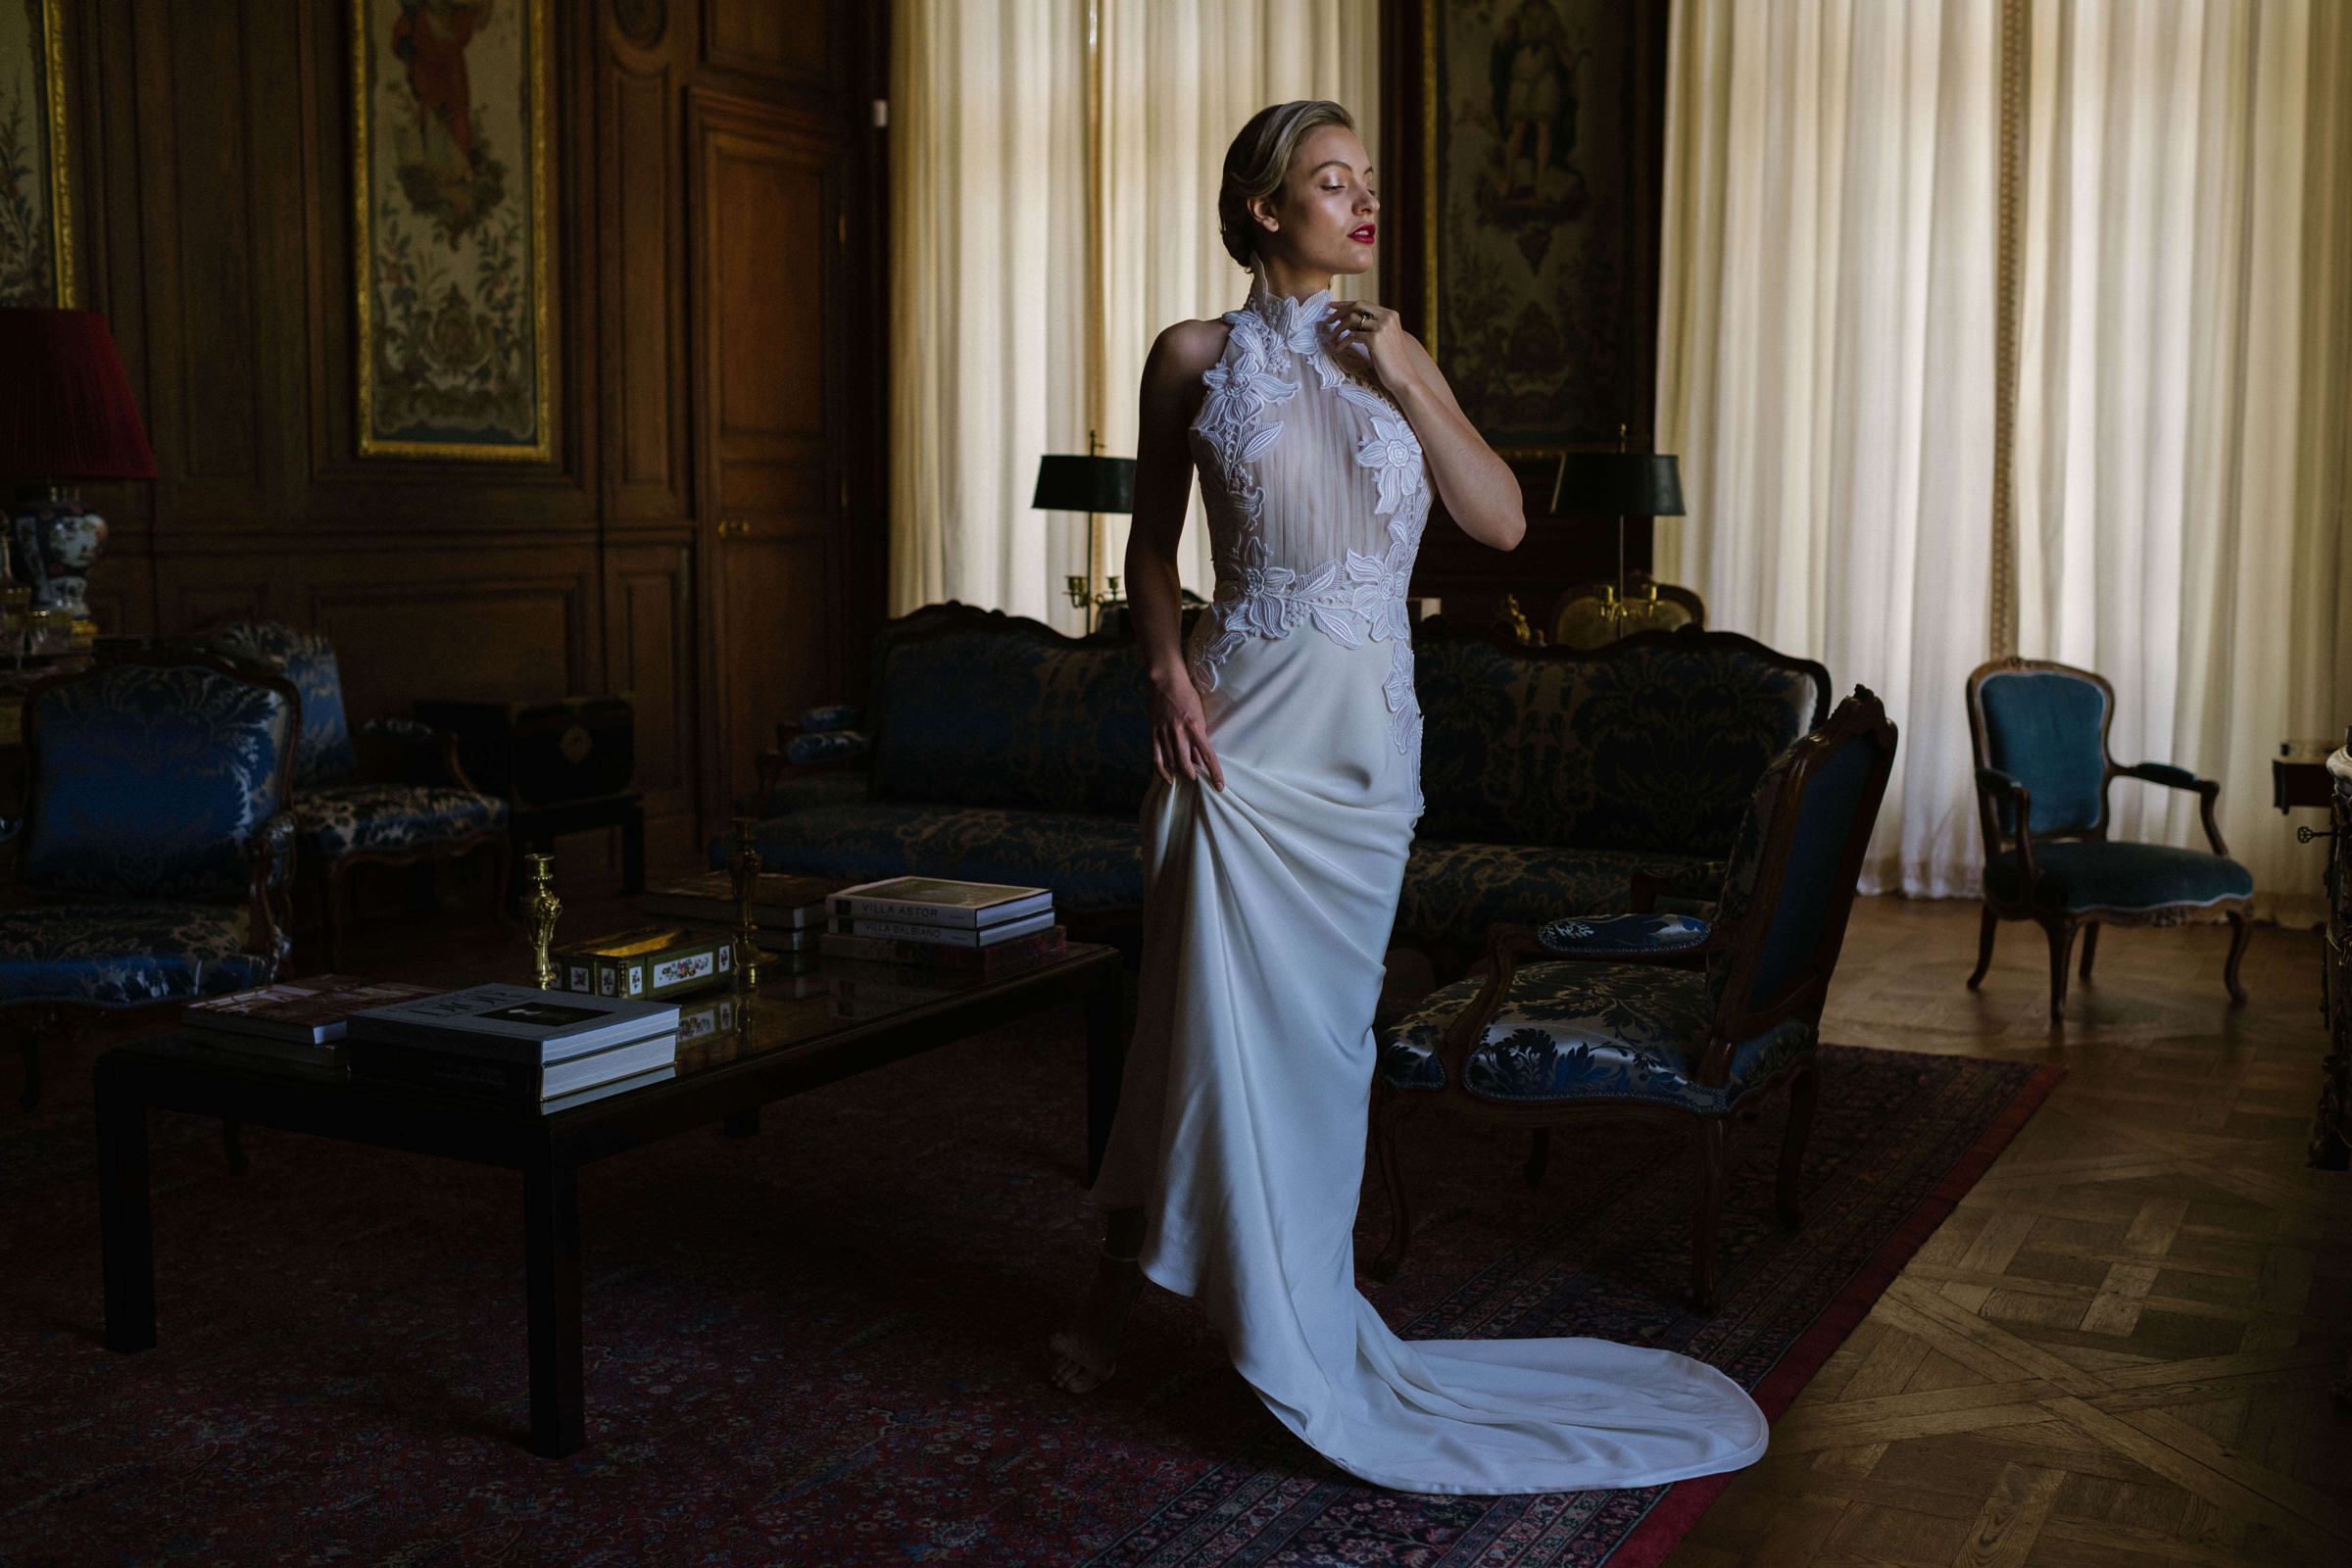 Fashionable low light photo of bride and in crepe gown by Thierry Joubert